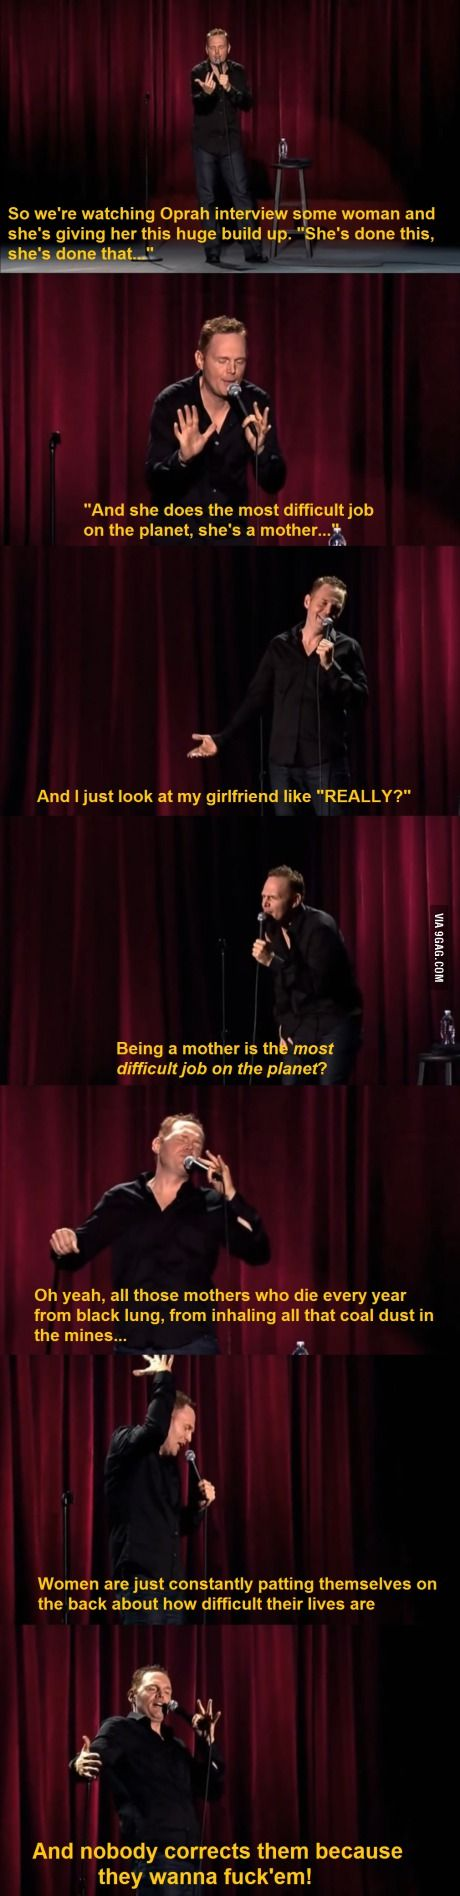 Bill Burr telling it like it is